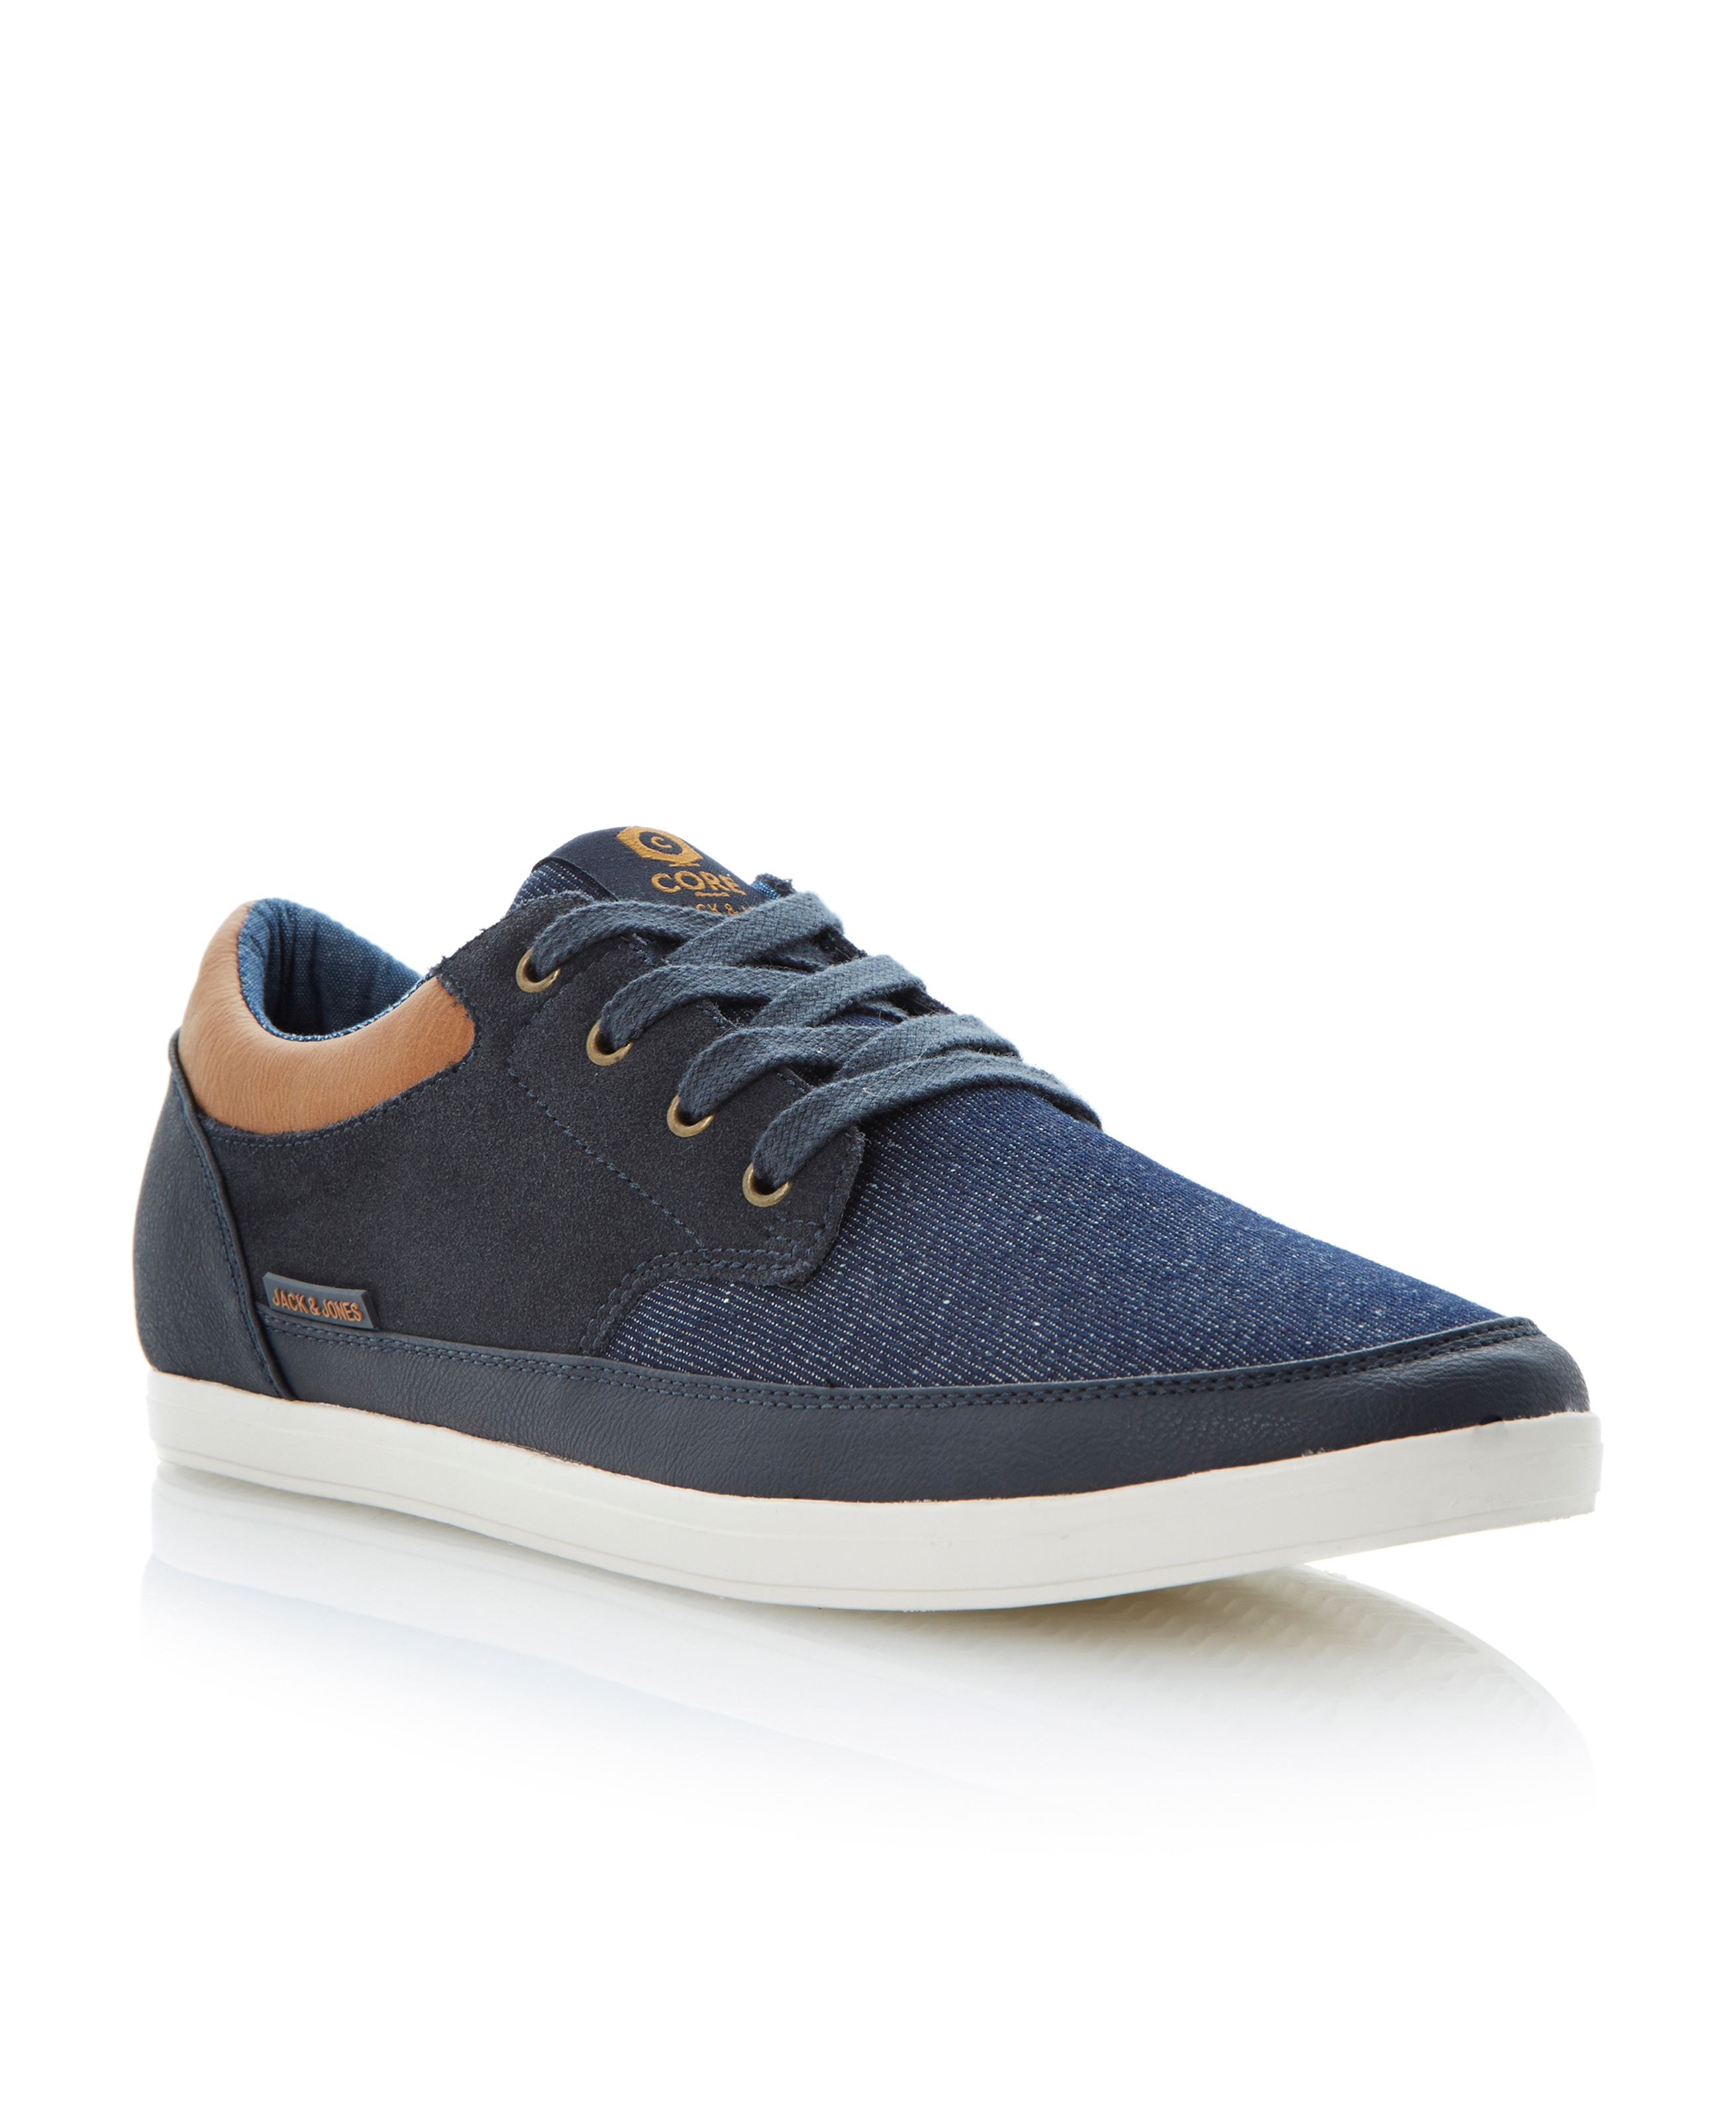 Jj brad core lace up multi tone trainers